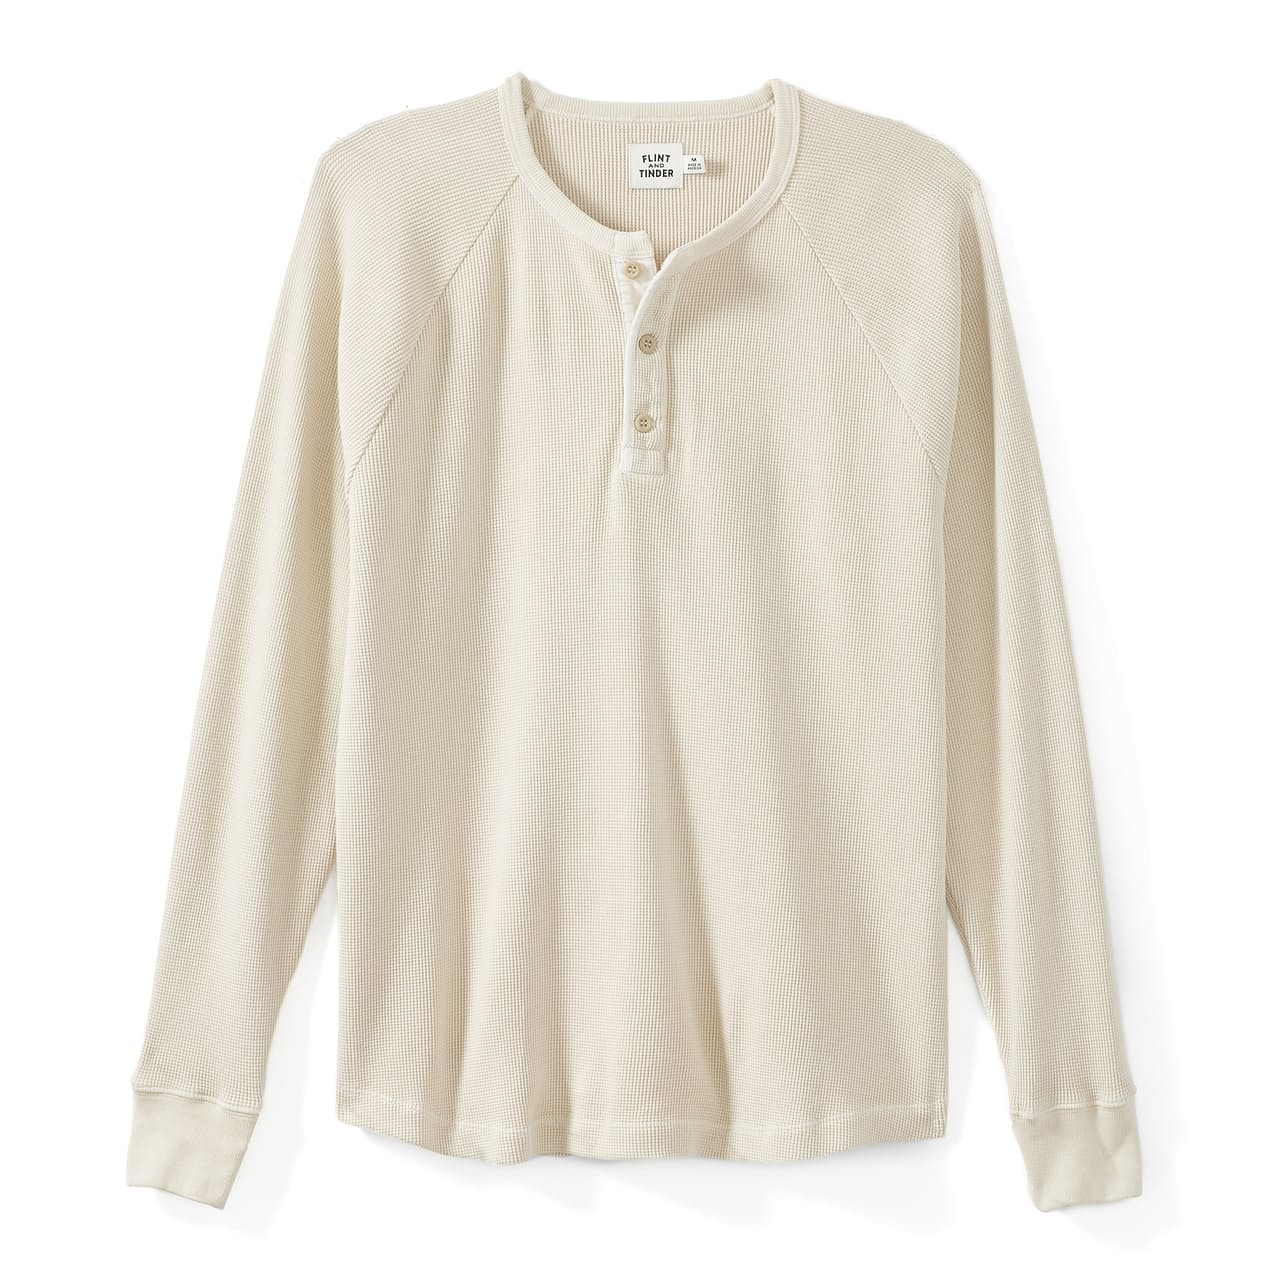 Flint and Tinder Raglan Waffle Henley shirt in oatmeal, best men's thermal